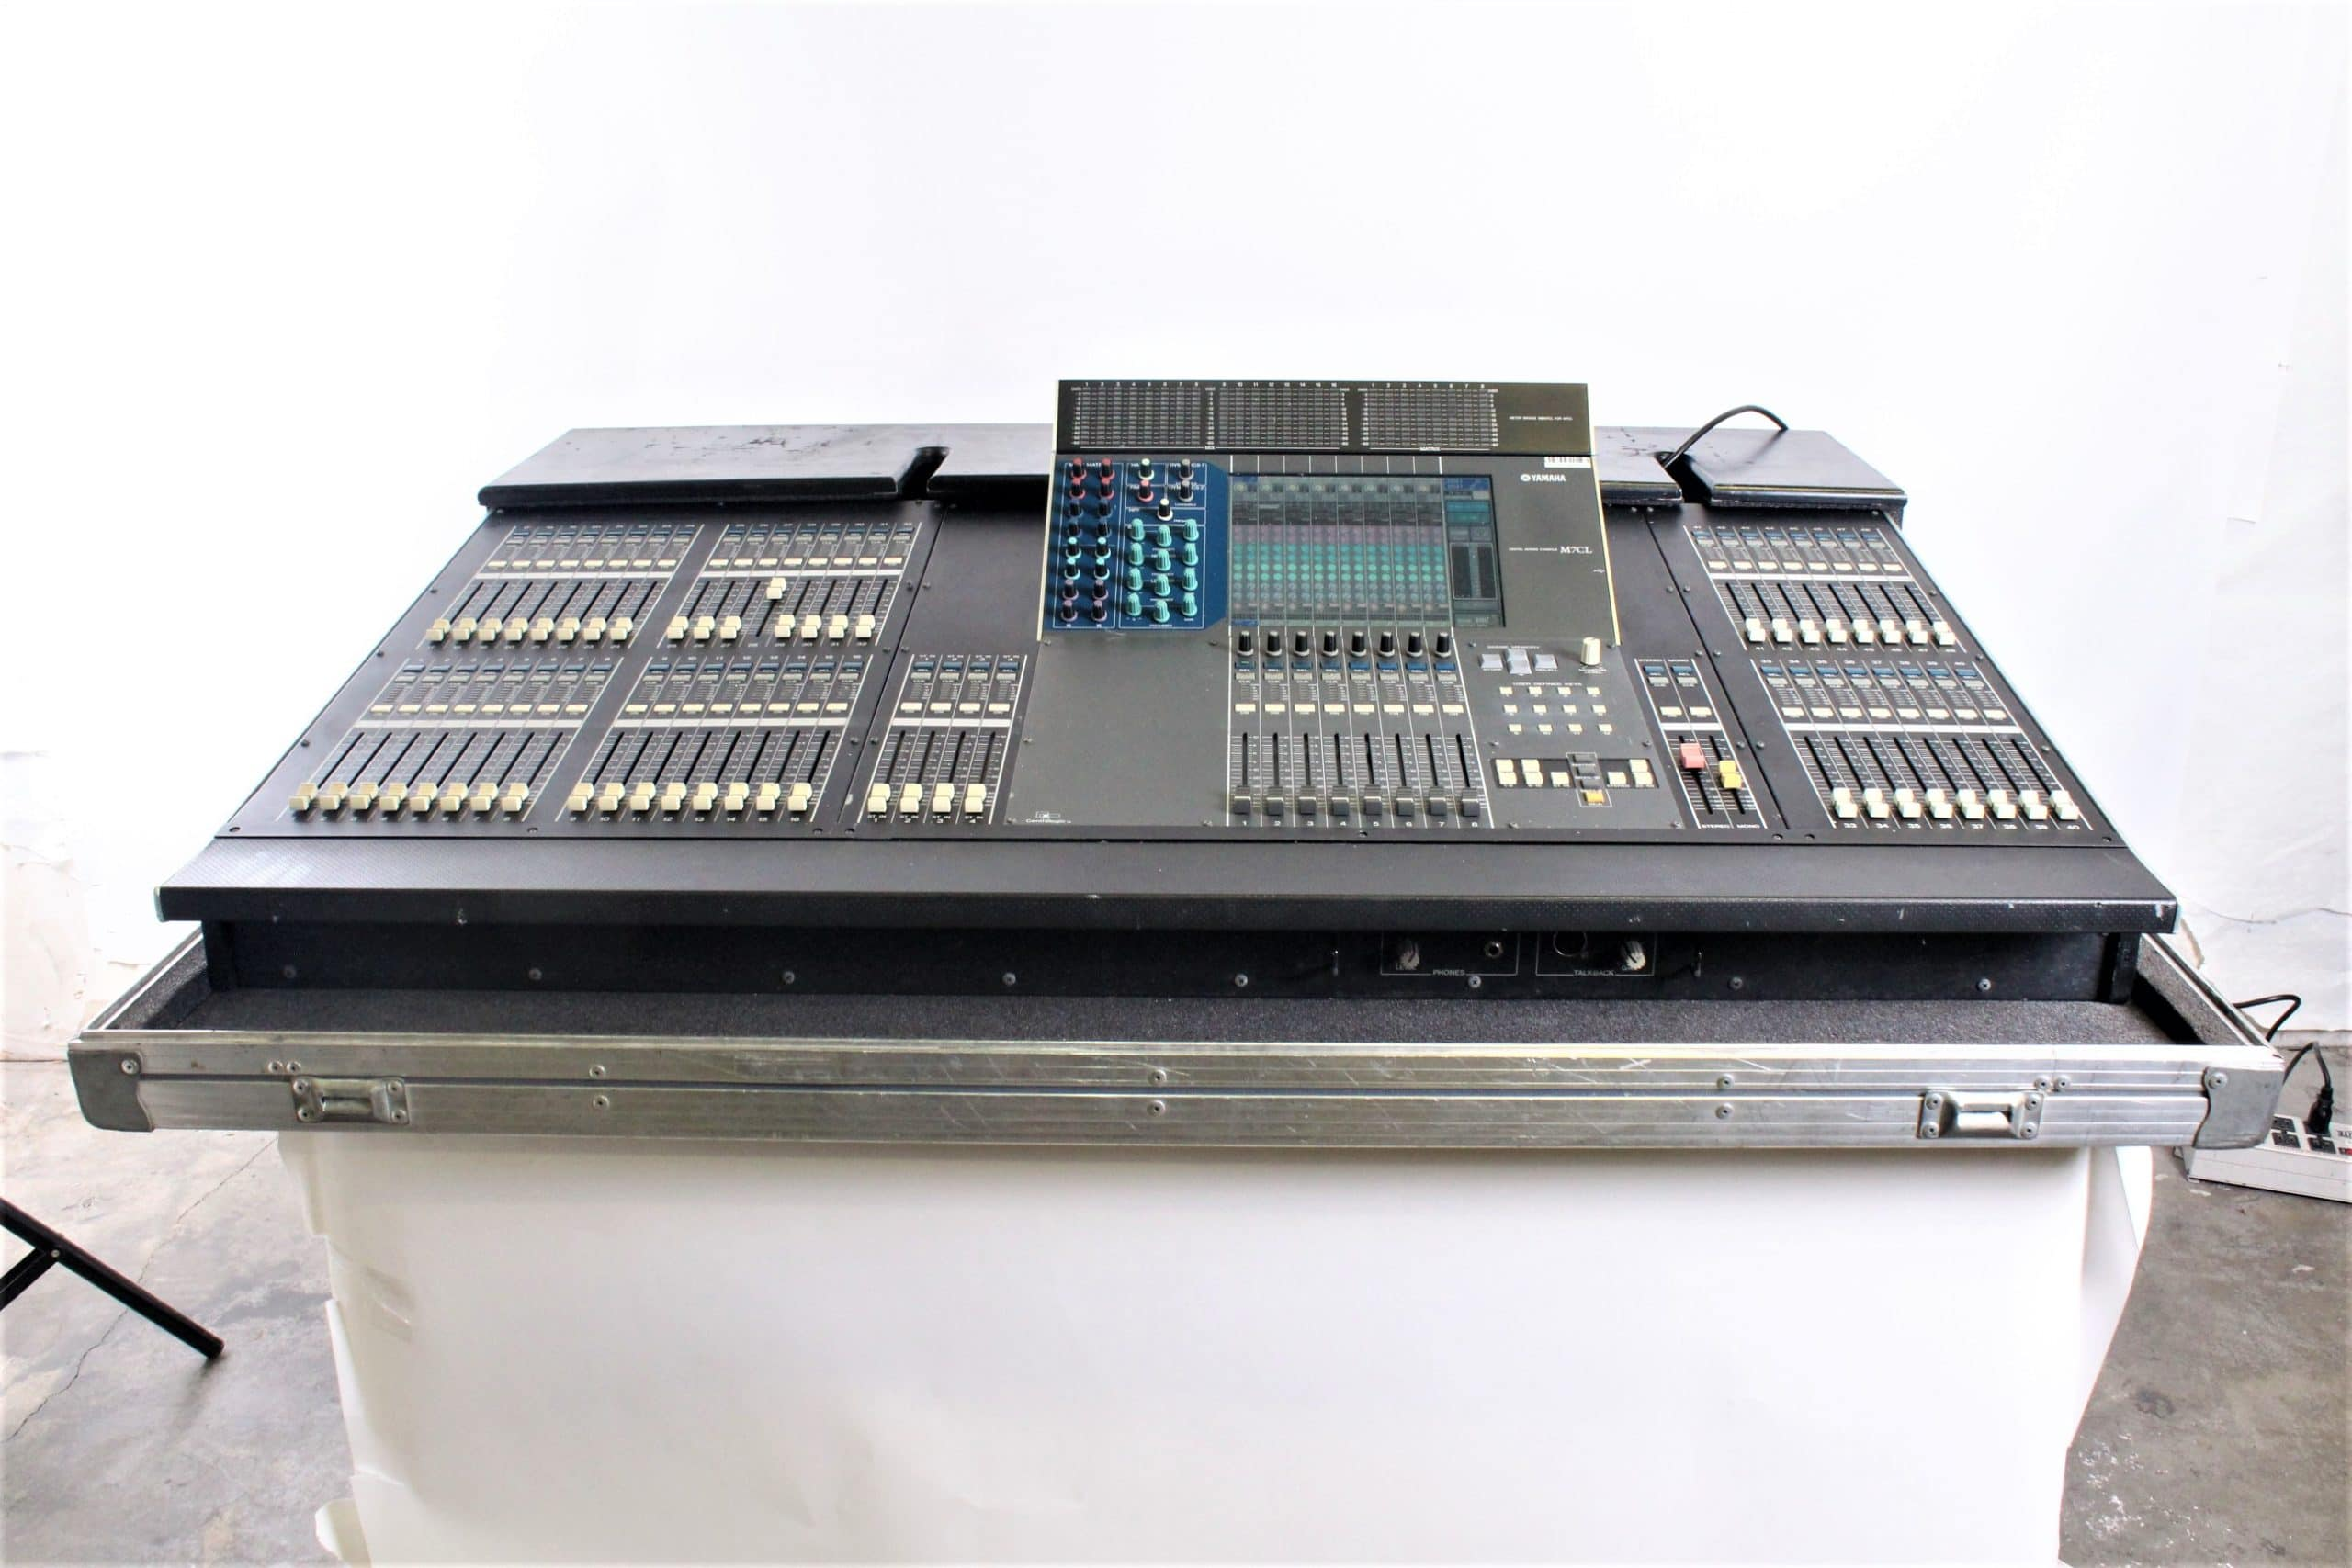 yamaha-m7cl-48-digital-audio-mixing-console-in-wheeled-road-case-1223-1 FRONT1